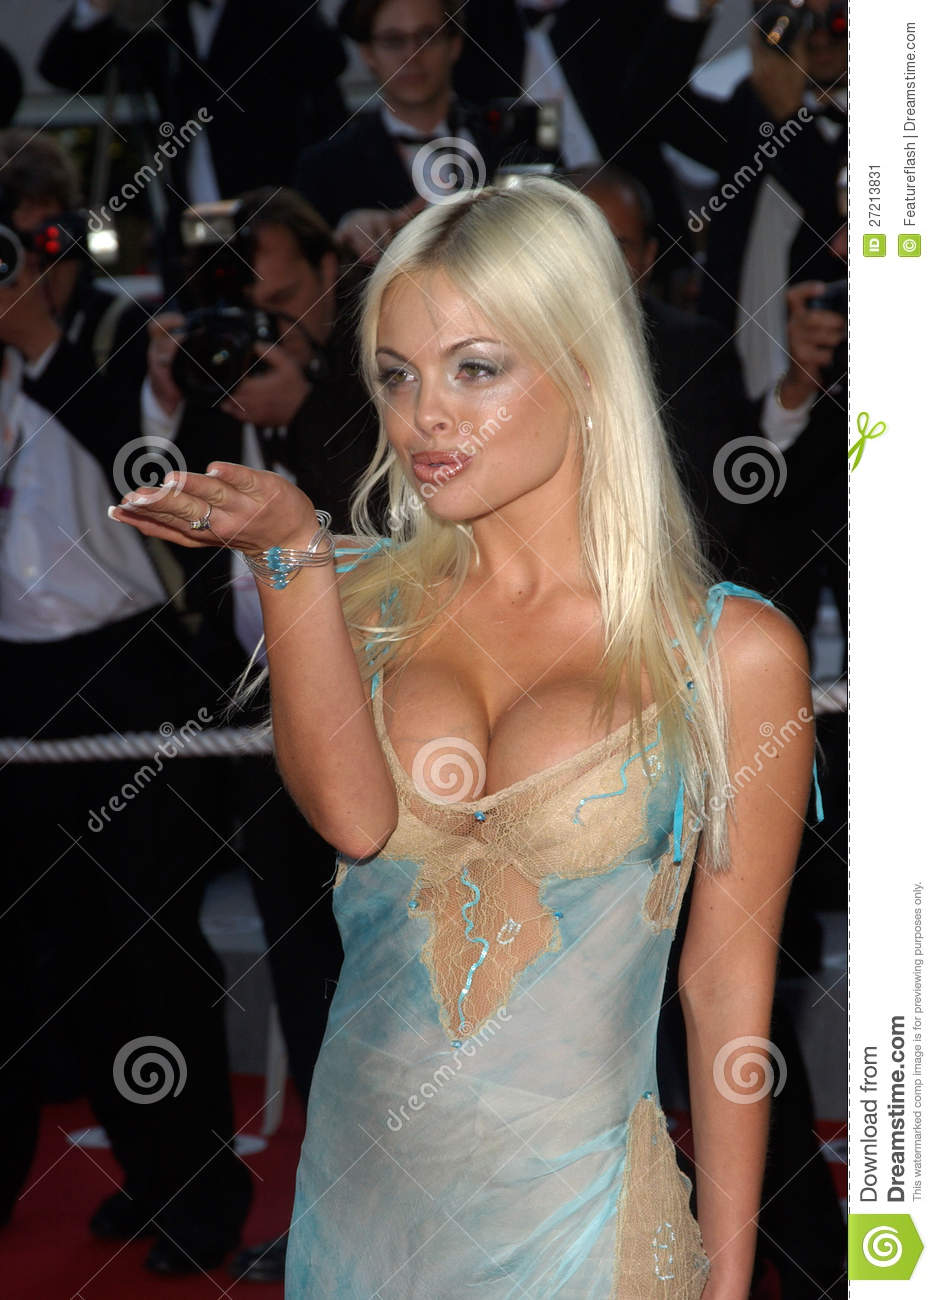 Jesse Jane Full HD Wallpapers